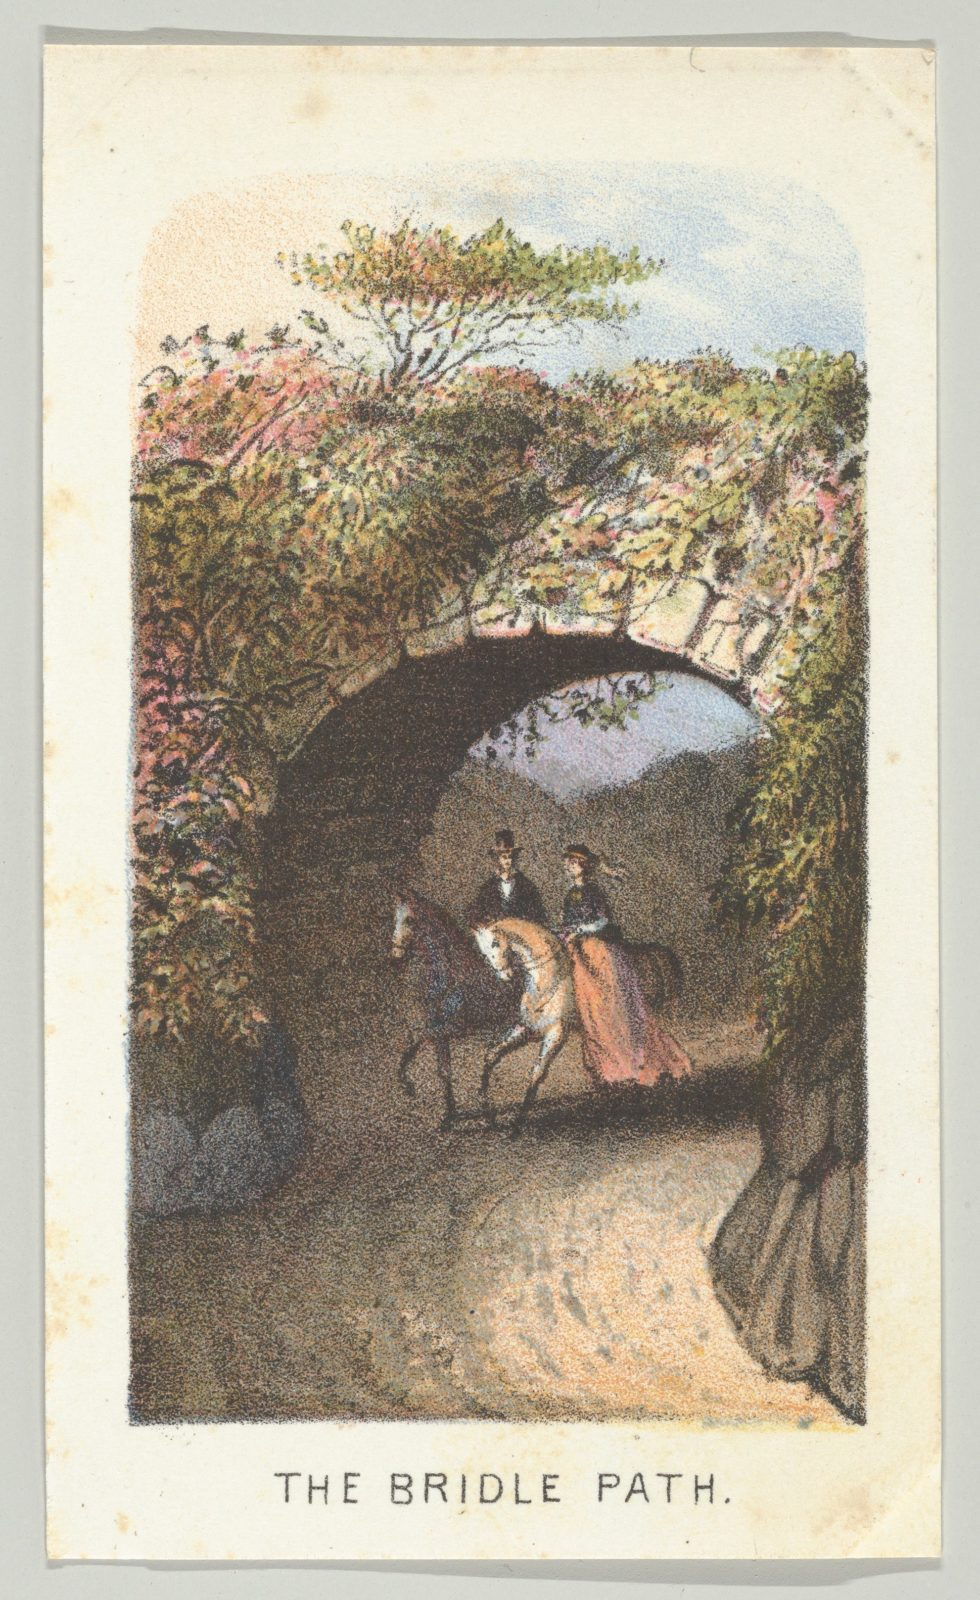 The Bridle Path, from the series, Views in Central Park, New York, Part 2